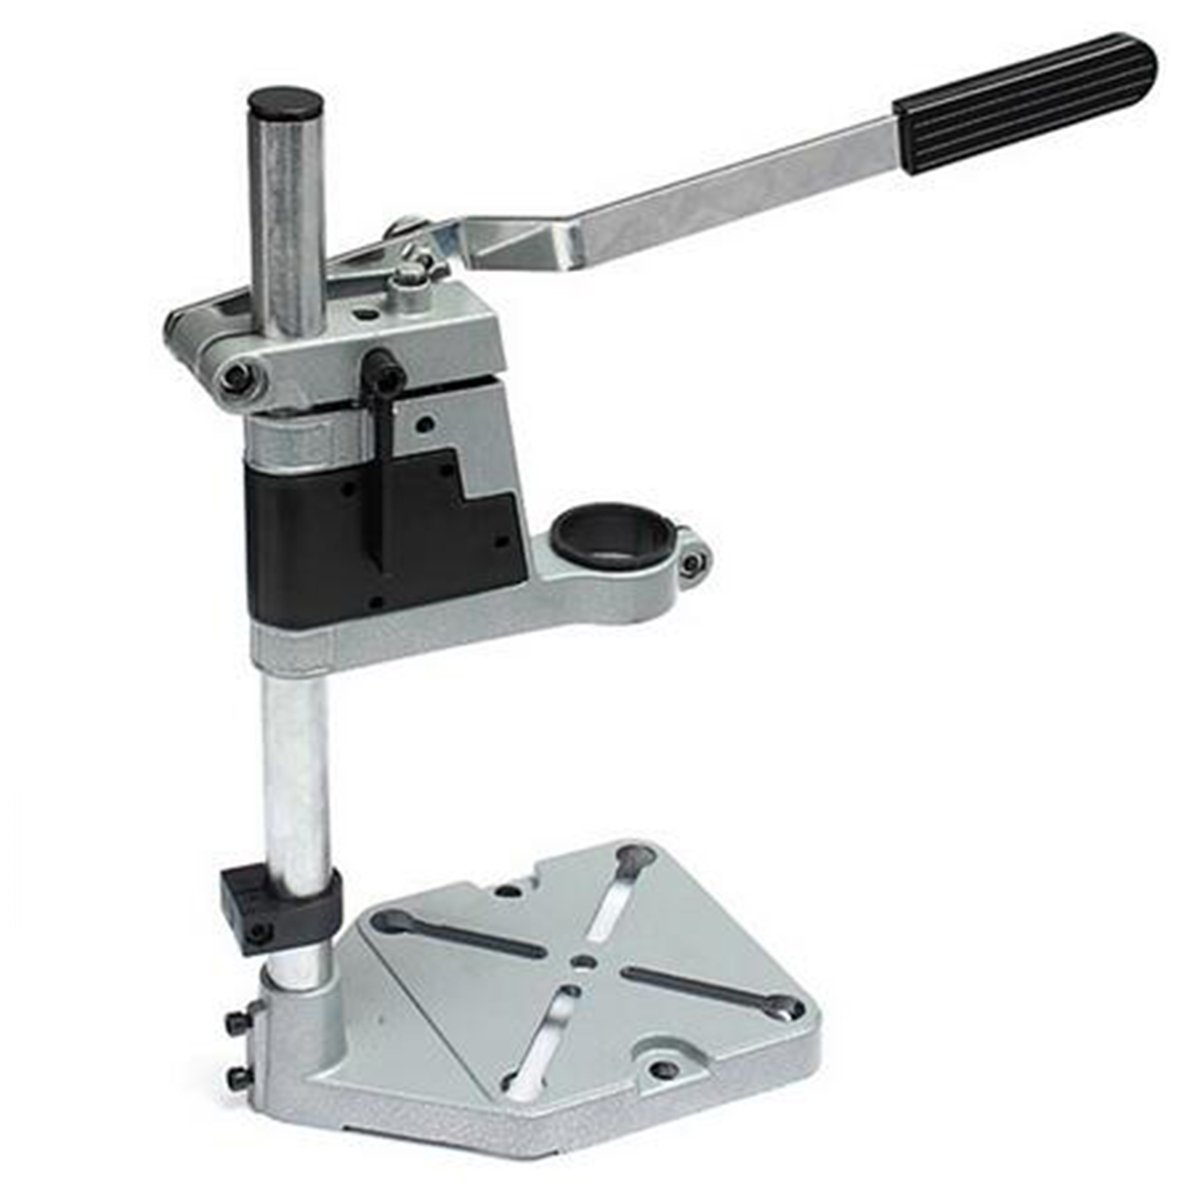 Yosoo Aluminum Multifunction Rotary Tool Bench Drill Press Support Stand Work Station Workbench Repair Tools Clamp For Drilling Collet